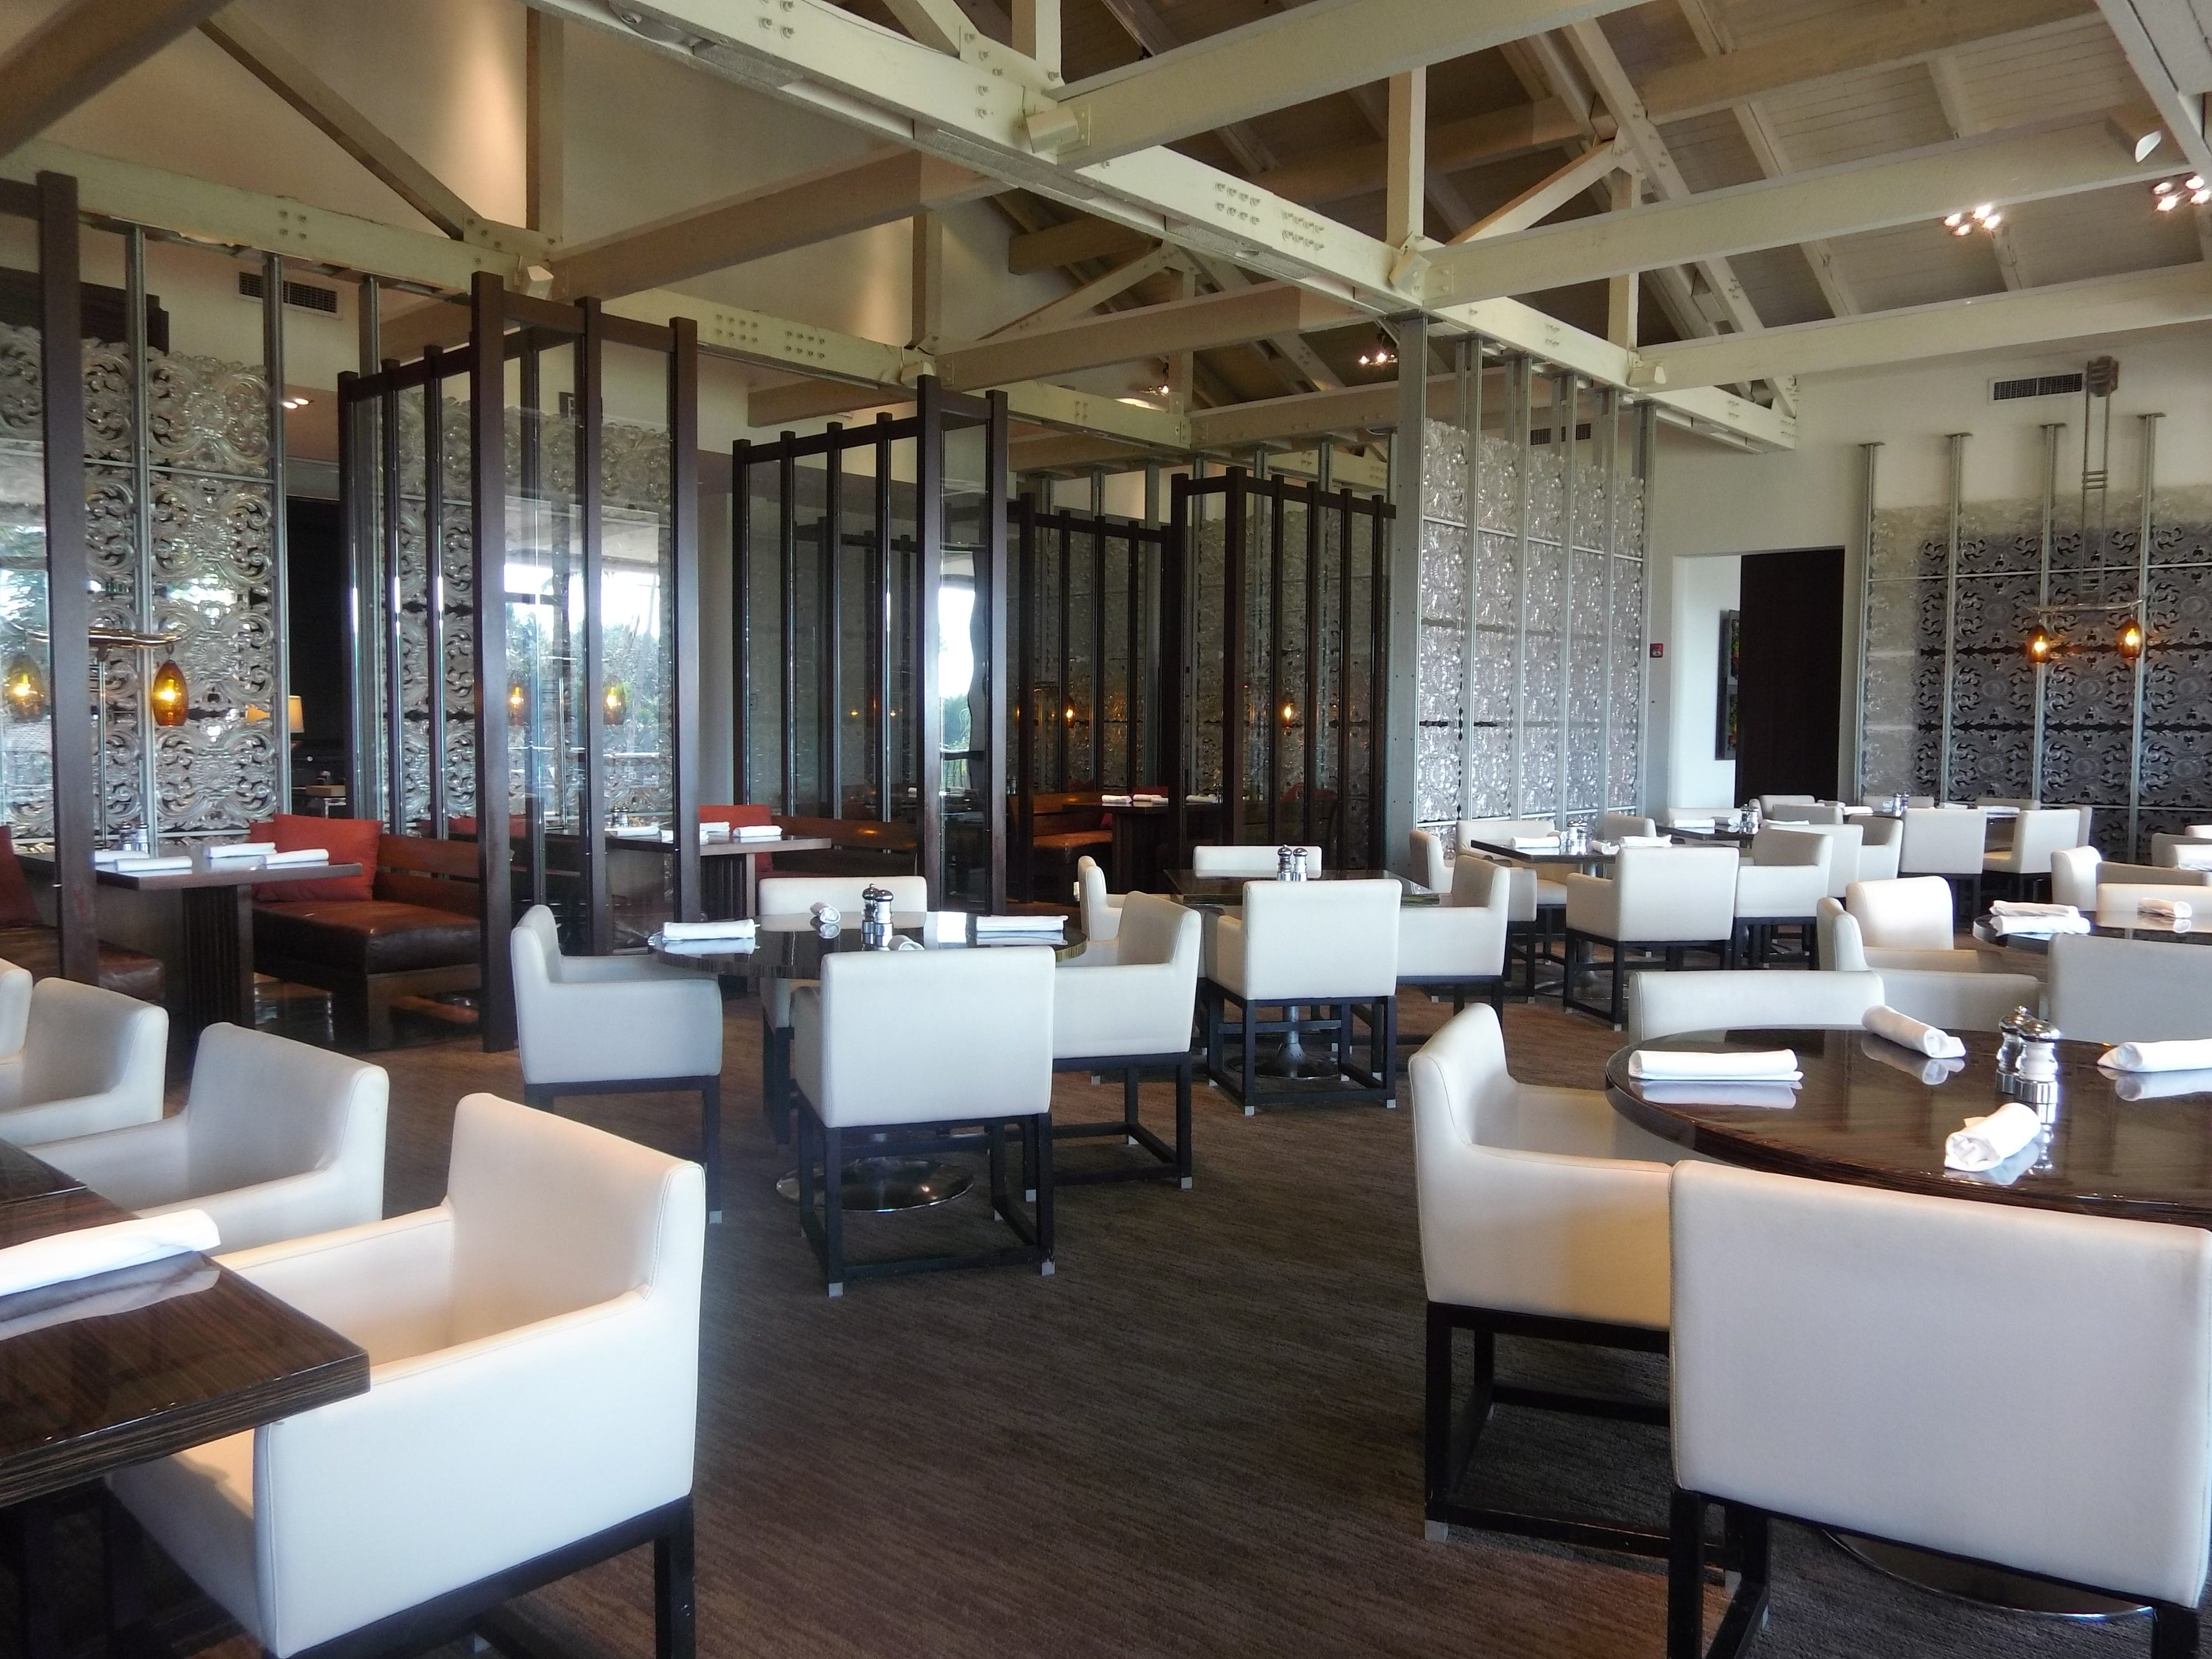 501 East Kitchen & Bar serves lunch and dinner, and is found near the golf courses at Boca Raton Resort & Club.